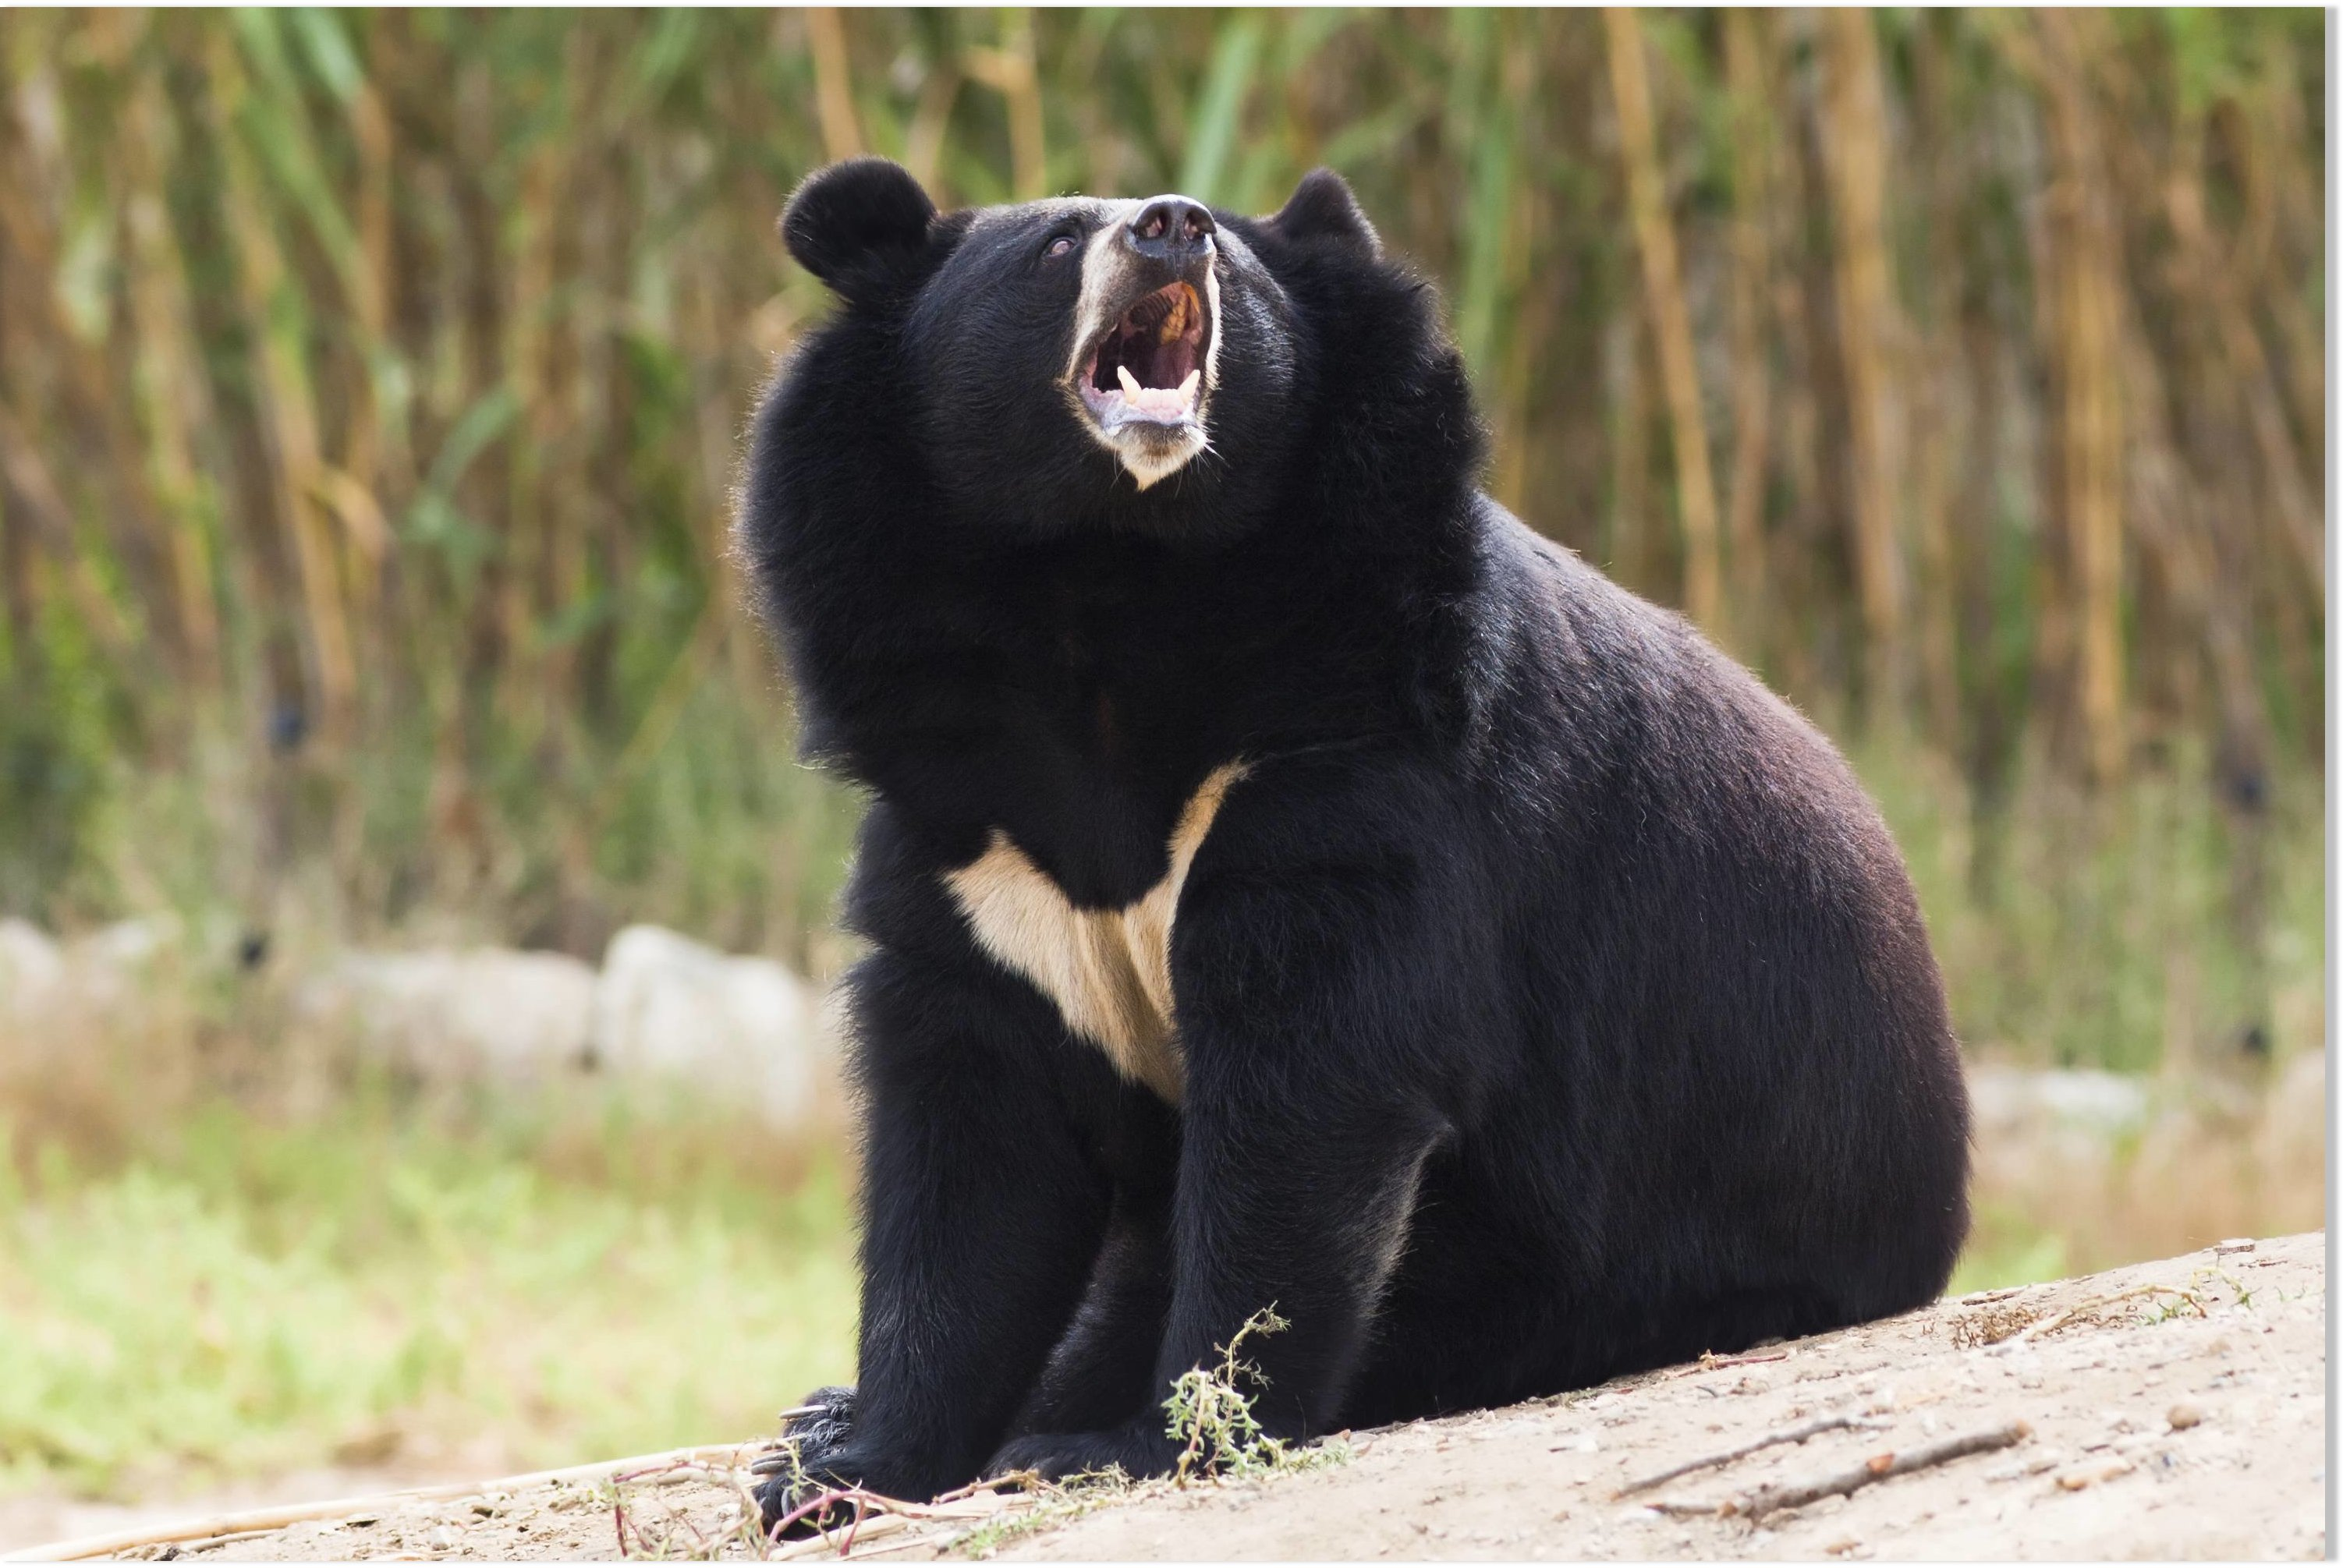 Http Www Sott Net Article 325648 Black Bear Kills Safari Park Worker In Her Car In Japan